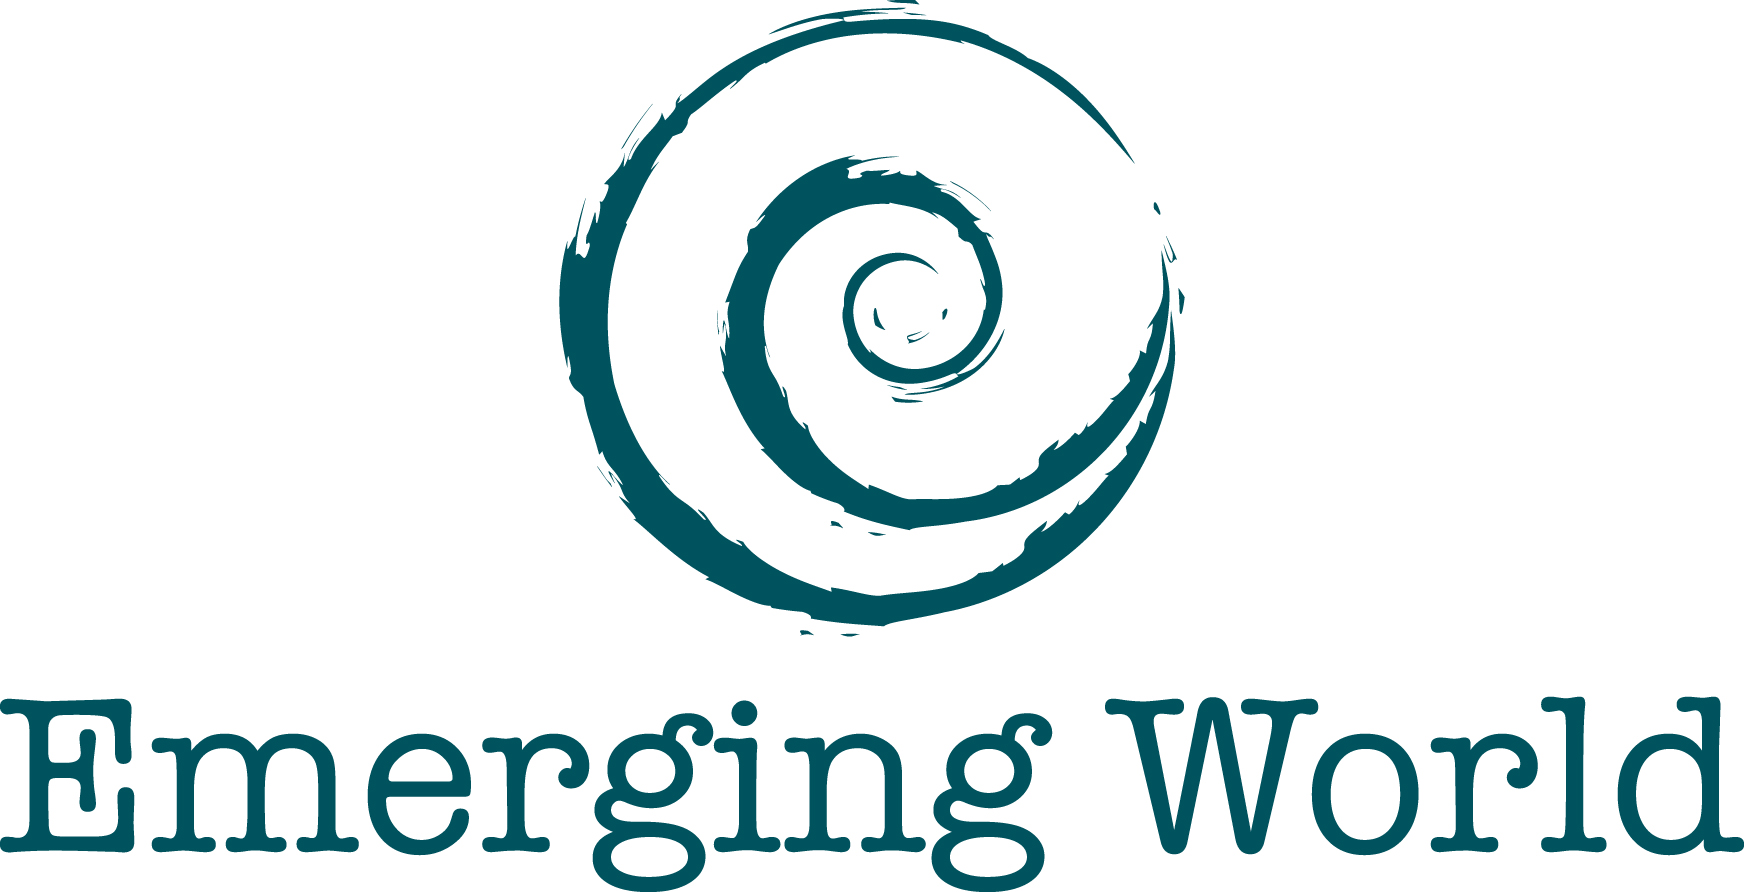 Emerging World logo NEW